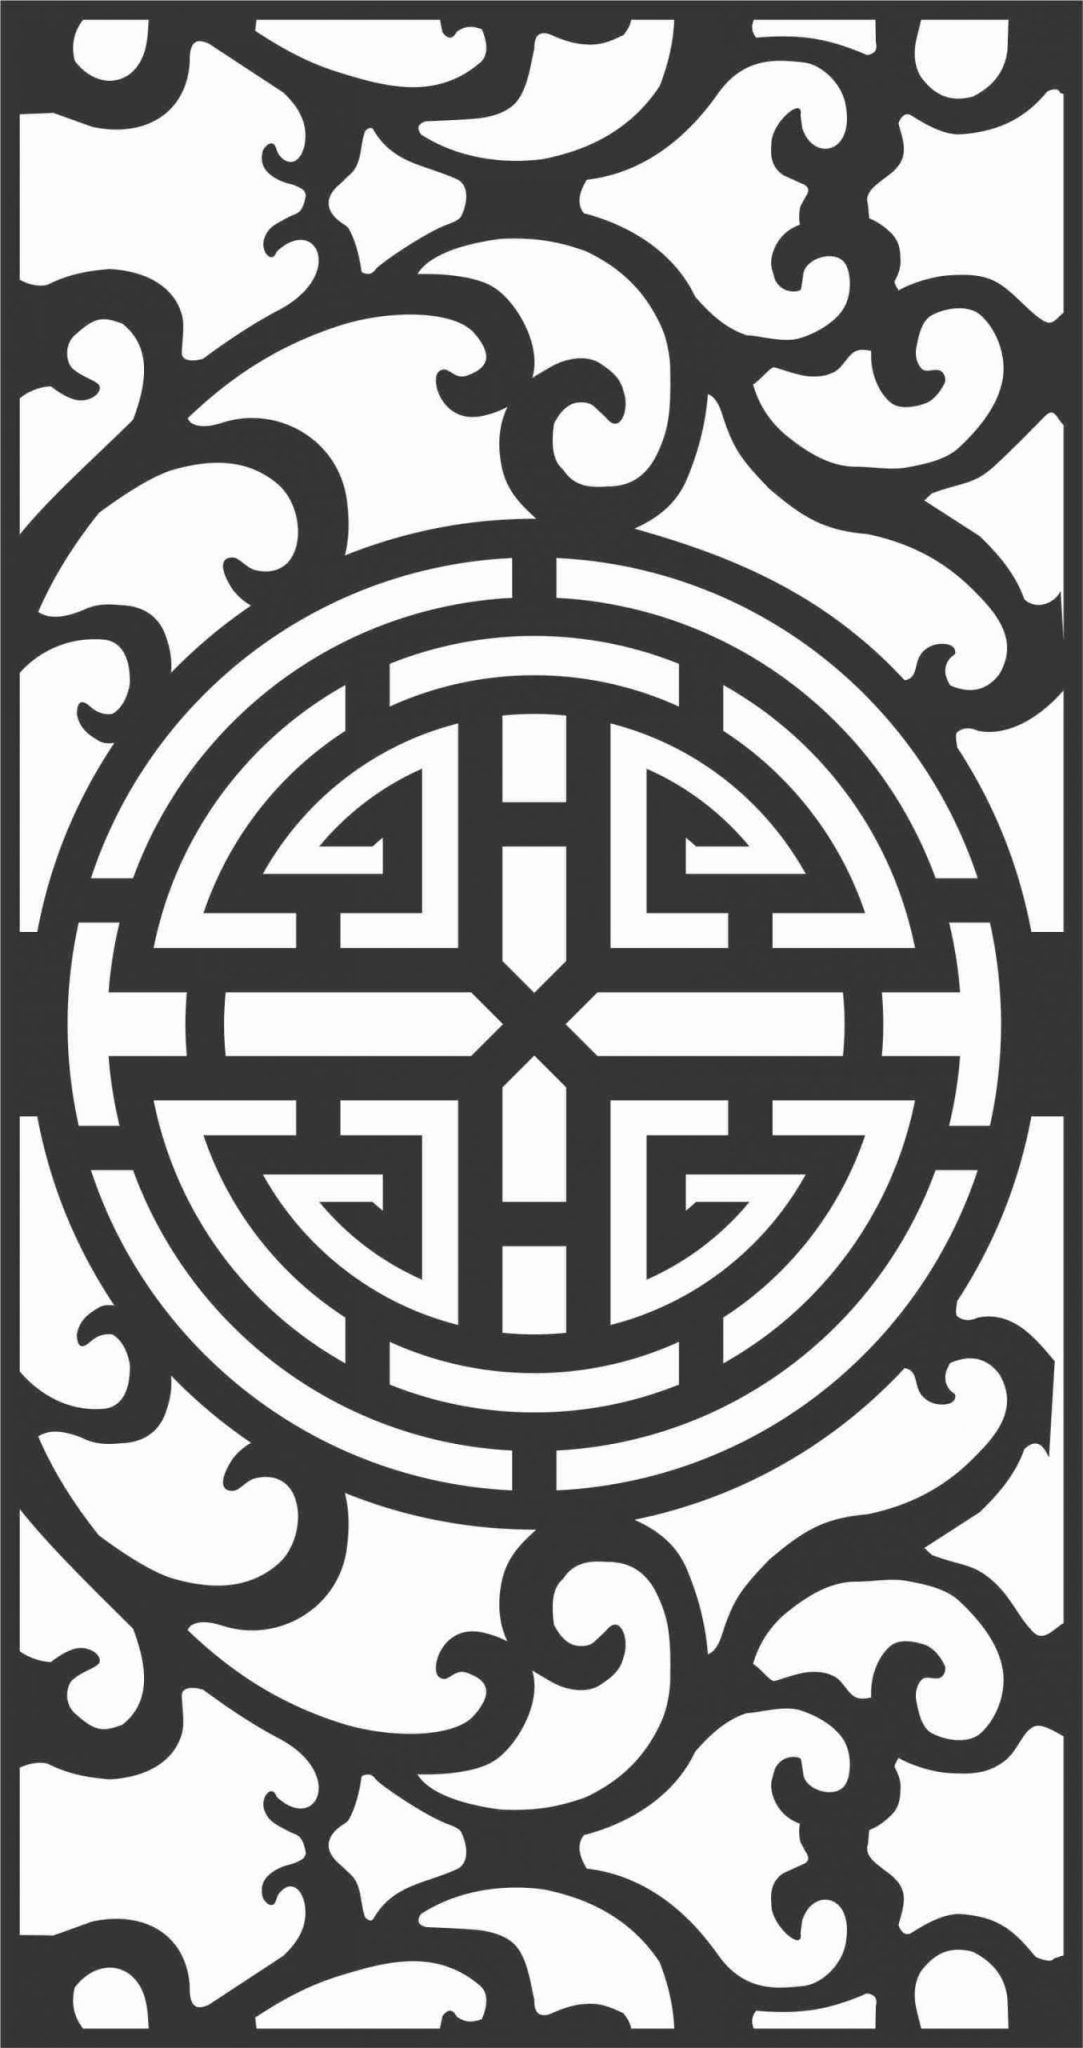 Decorative Screen Patterns For Laser Cutting 71 Free DXF File